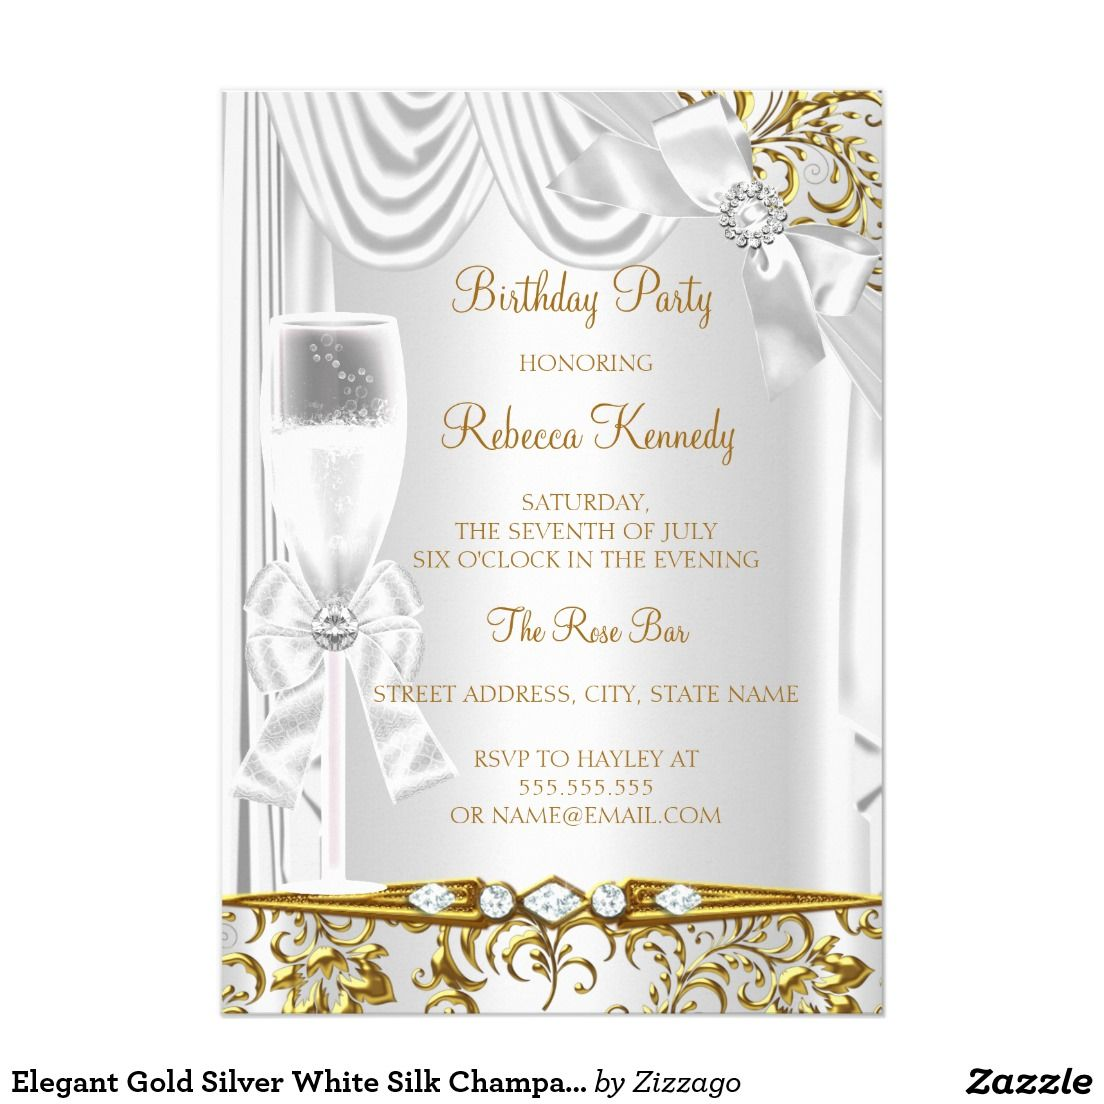 Invitation Cards For Ladies Party. Elegant Gold Silver White Silk Champagne Birthday 5x7 Paper Invitation Card